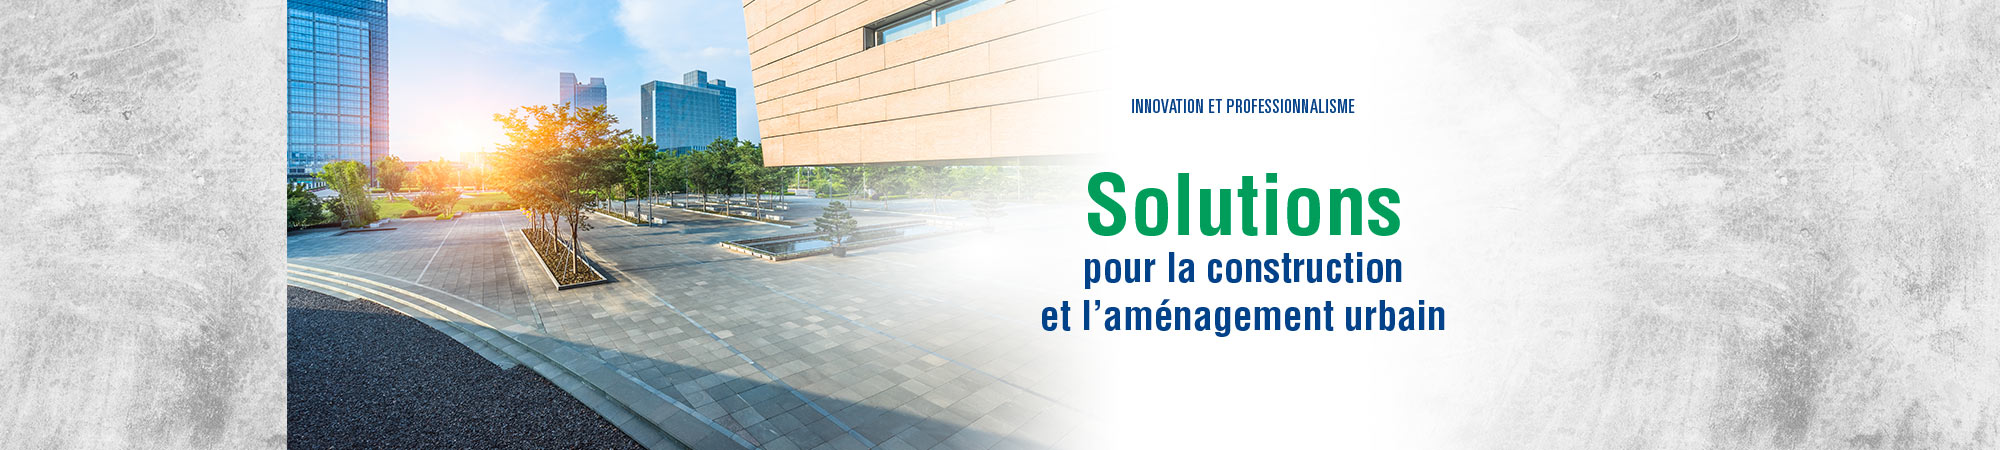 slide-Solutions-pour-la-construction-et-l-amenagement-urbain